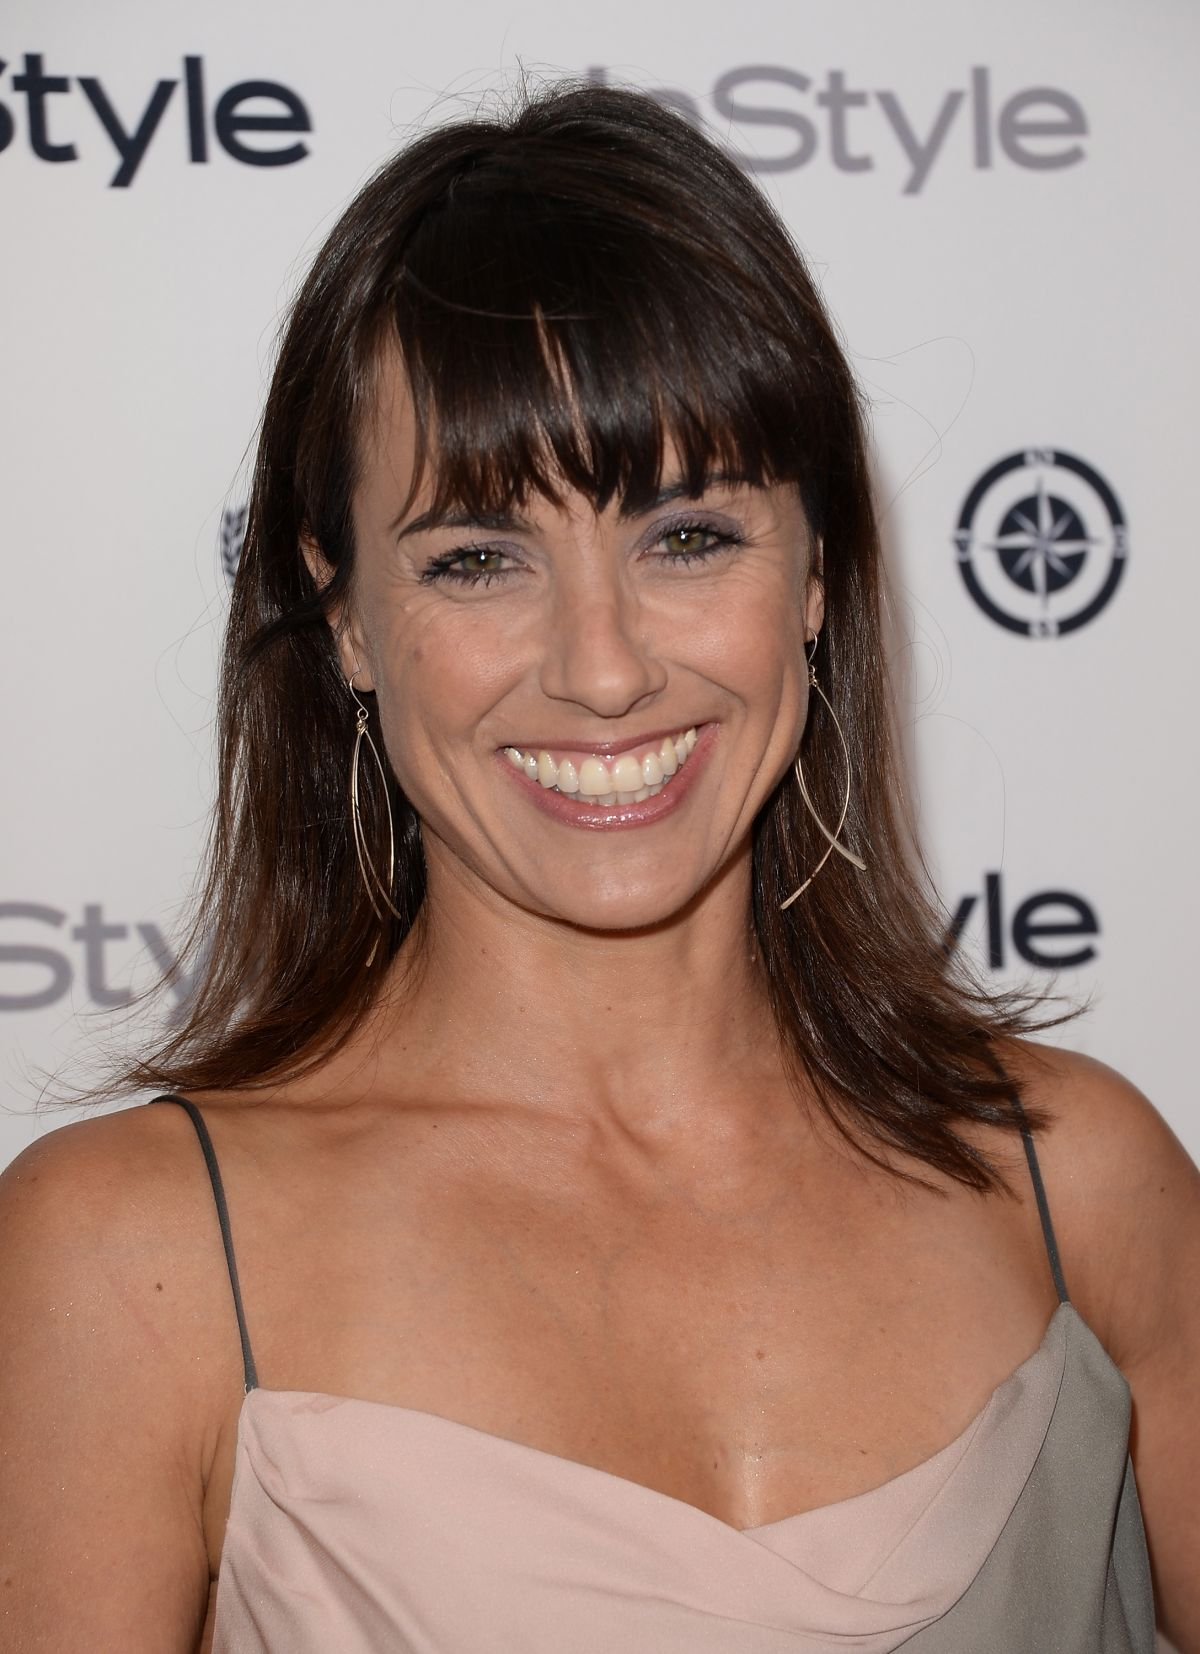 Constance Zimmer earned a  million dollar salary, leaving the net worth at 5 million in 2017